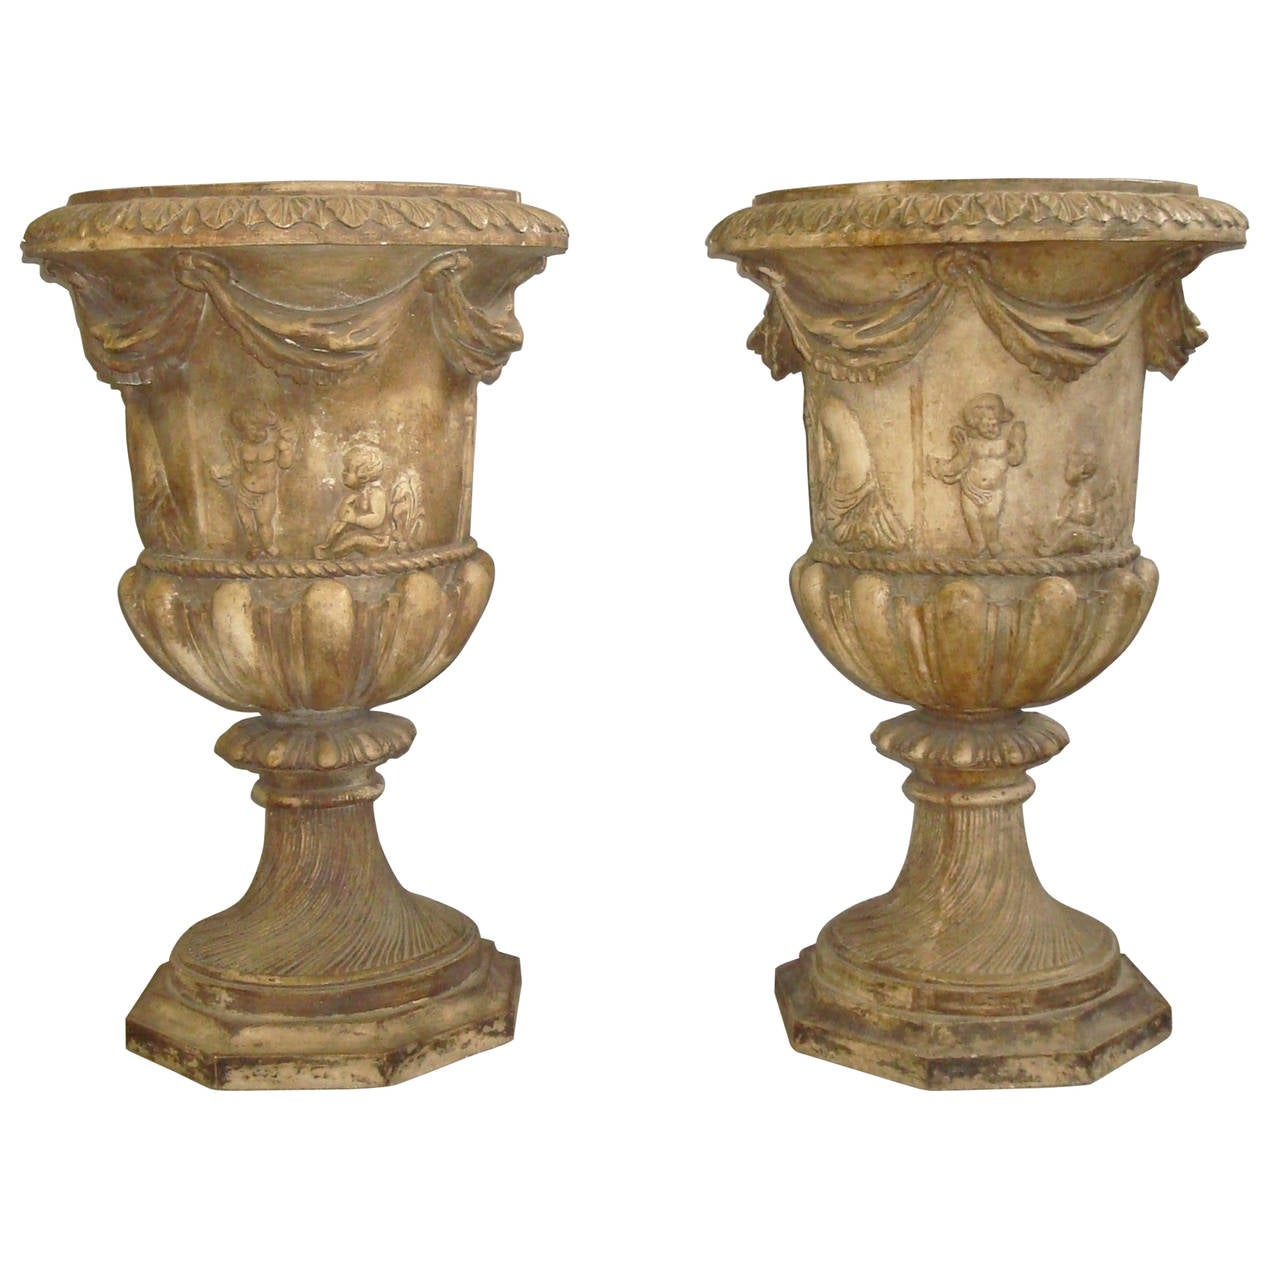 Regency Pair of Neoclassical Plaster Urns For Sale